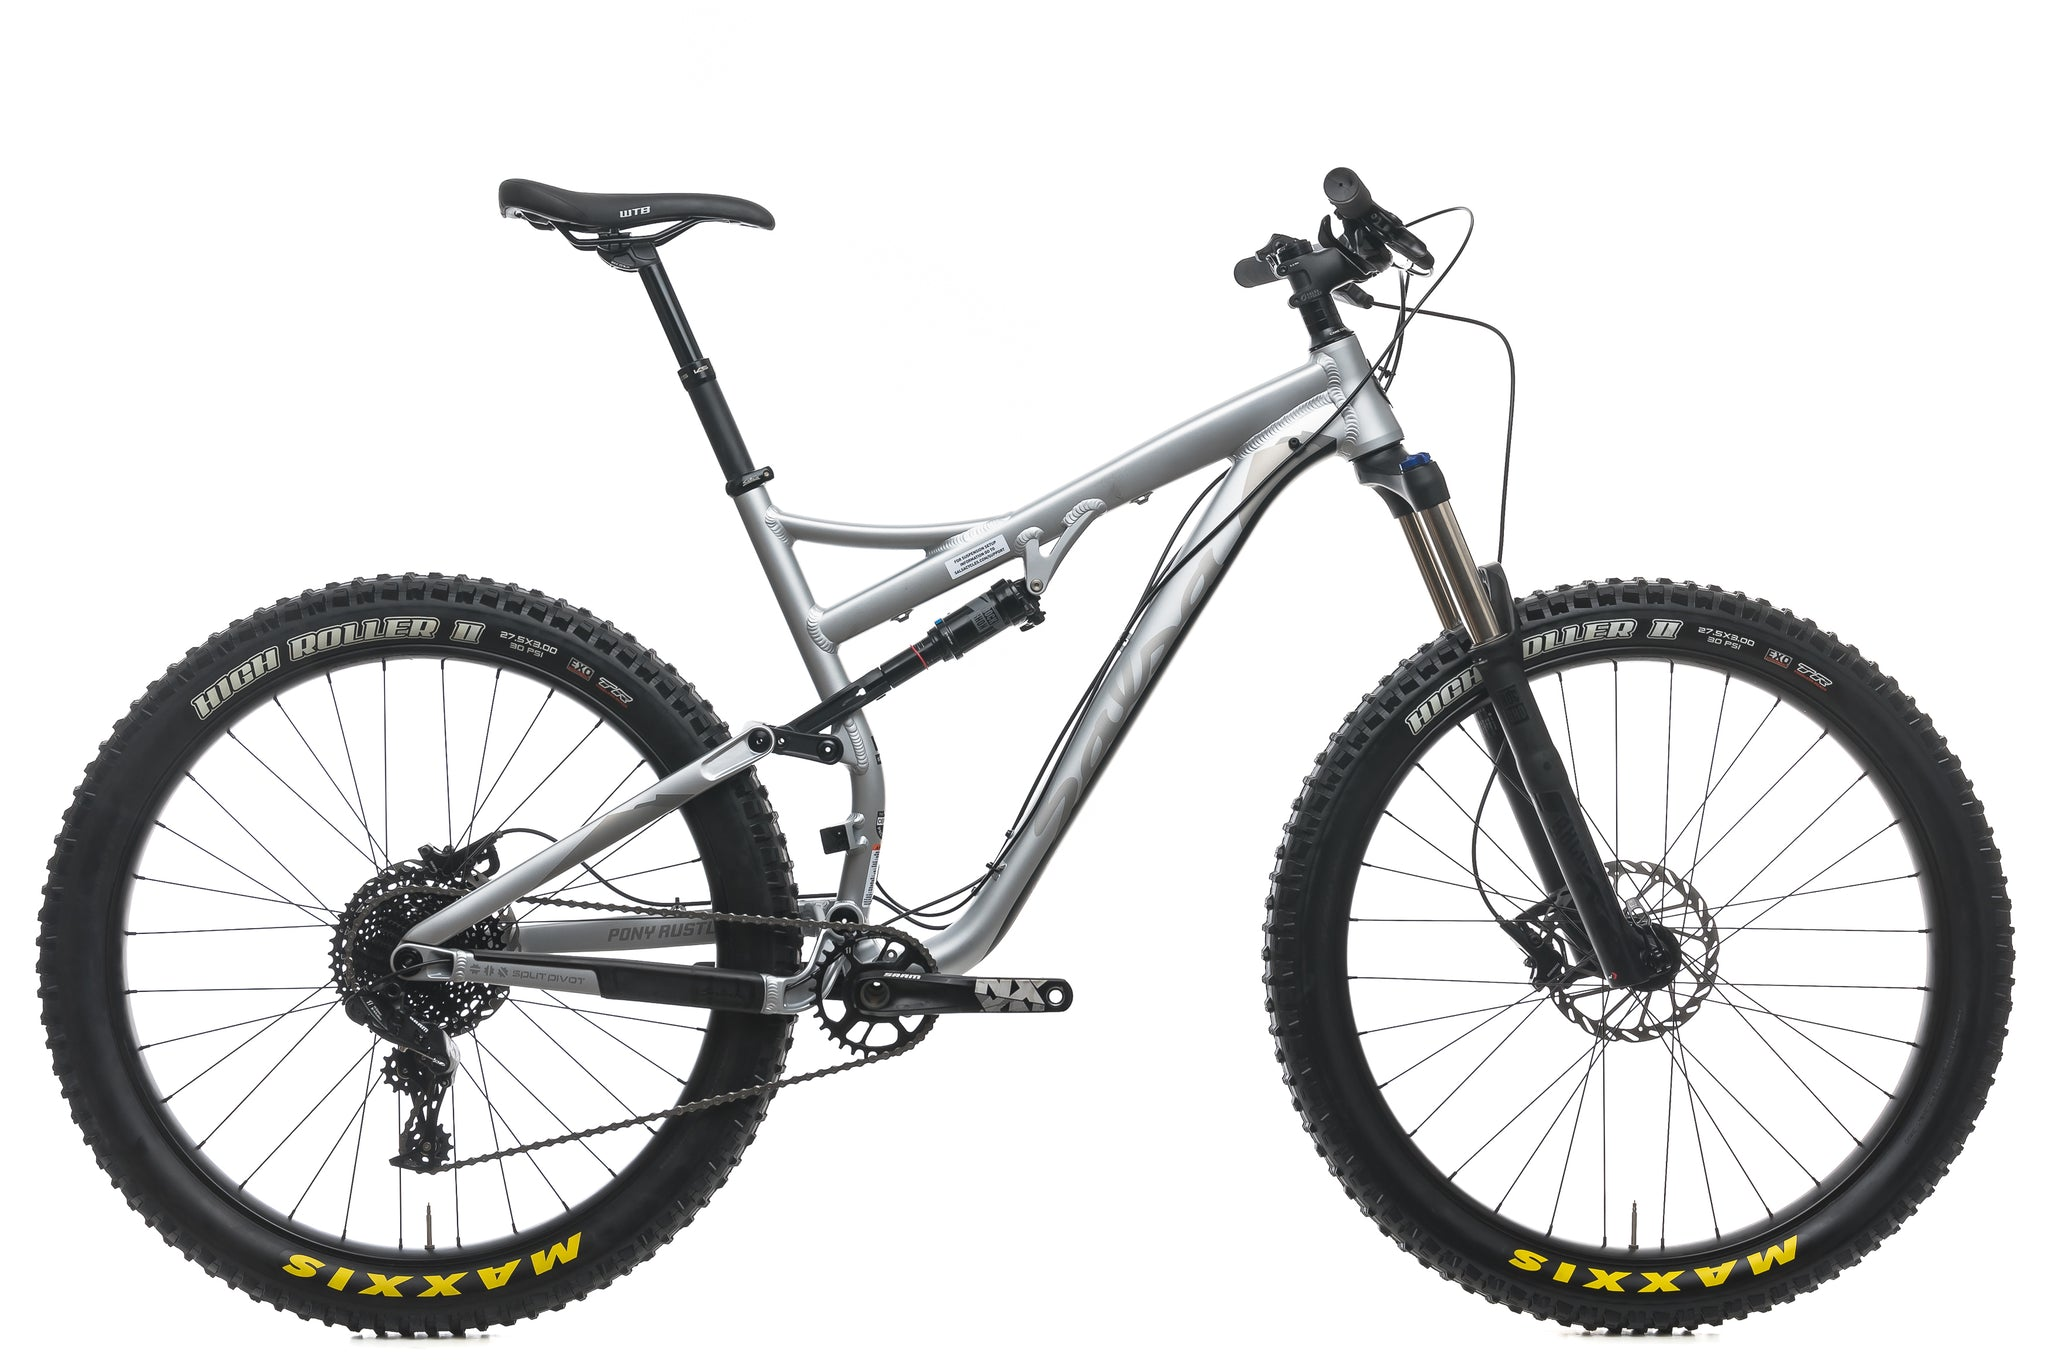 Salsa Pony Rustler NX1 Large Bike - 2018